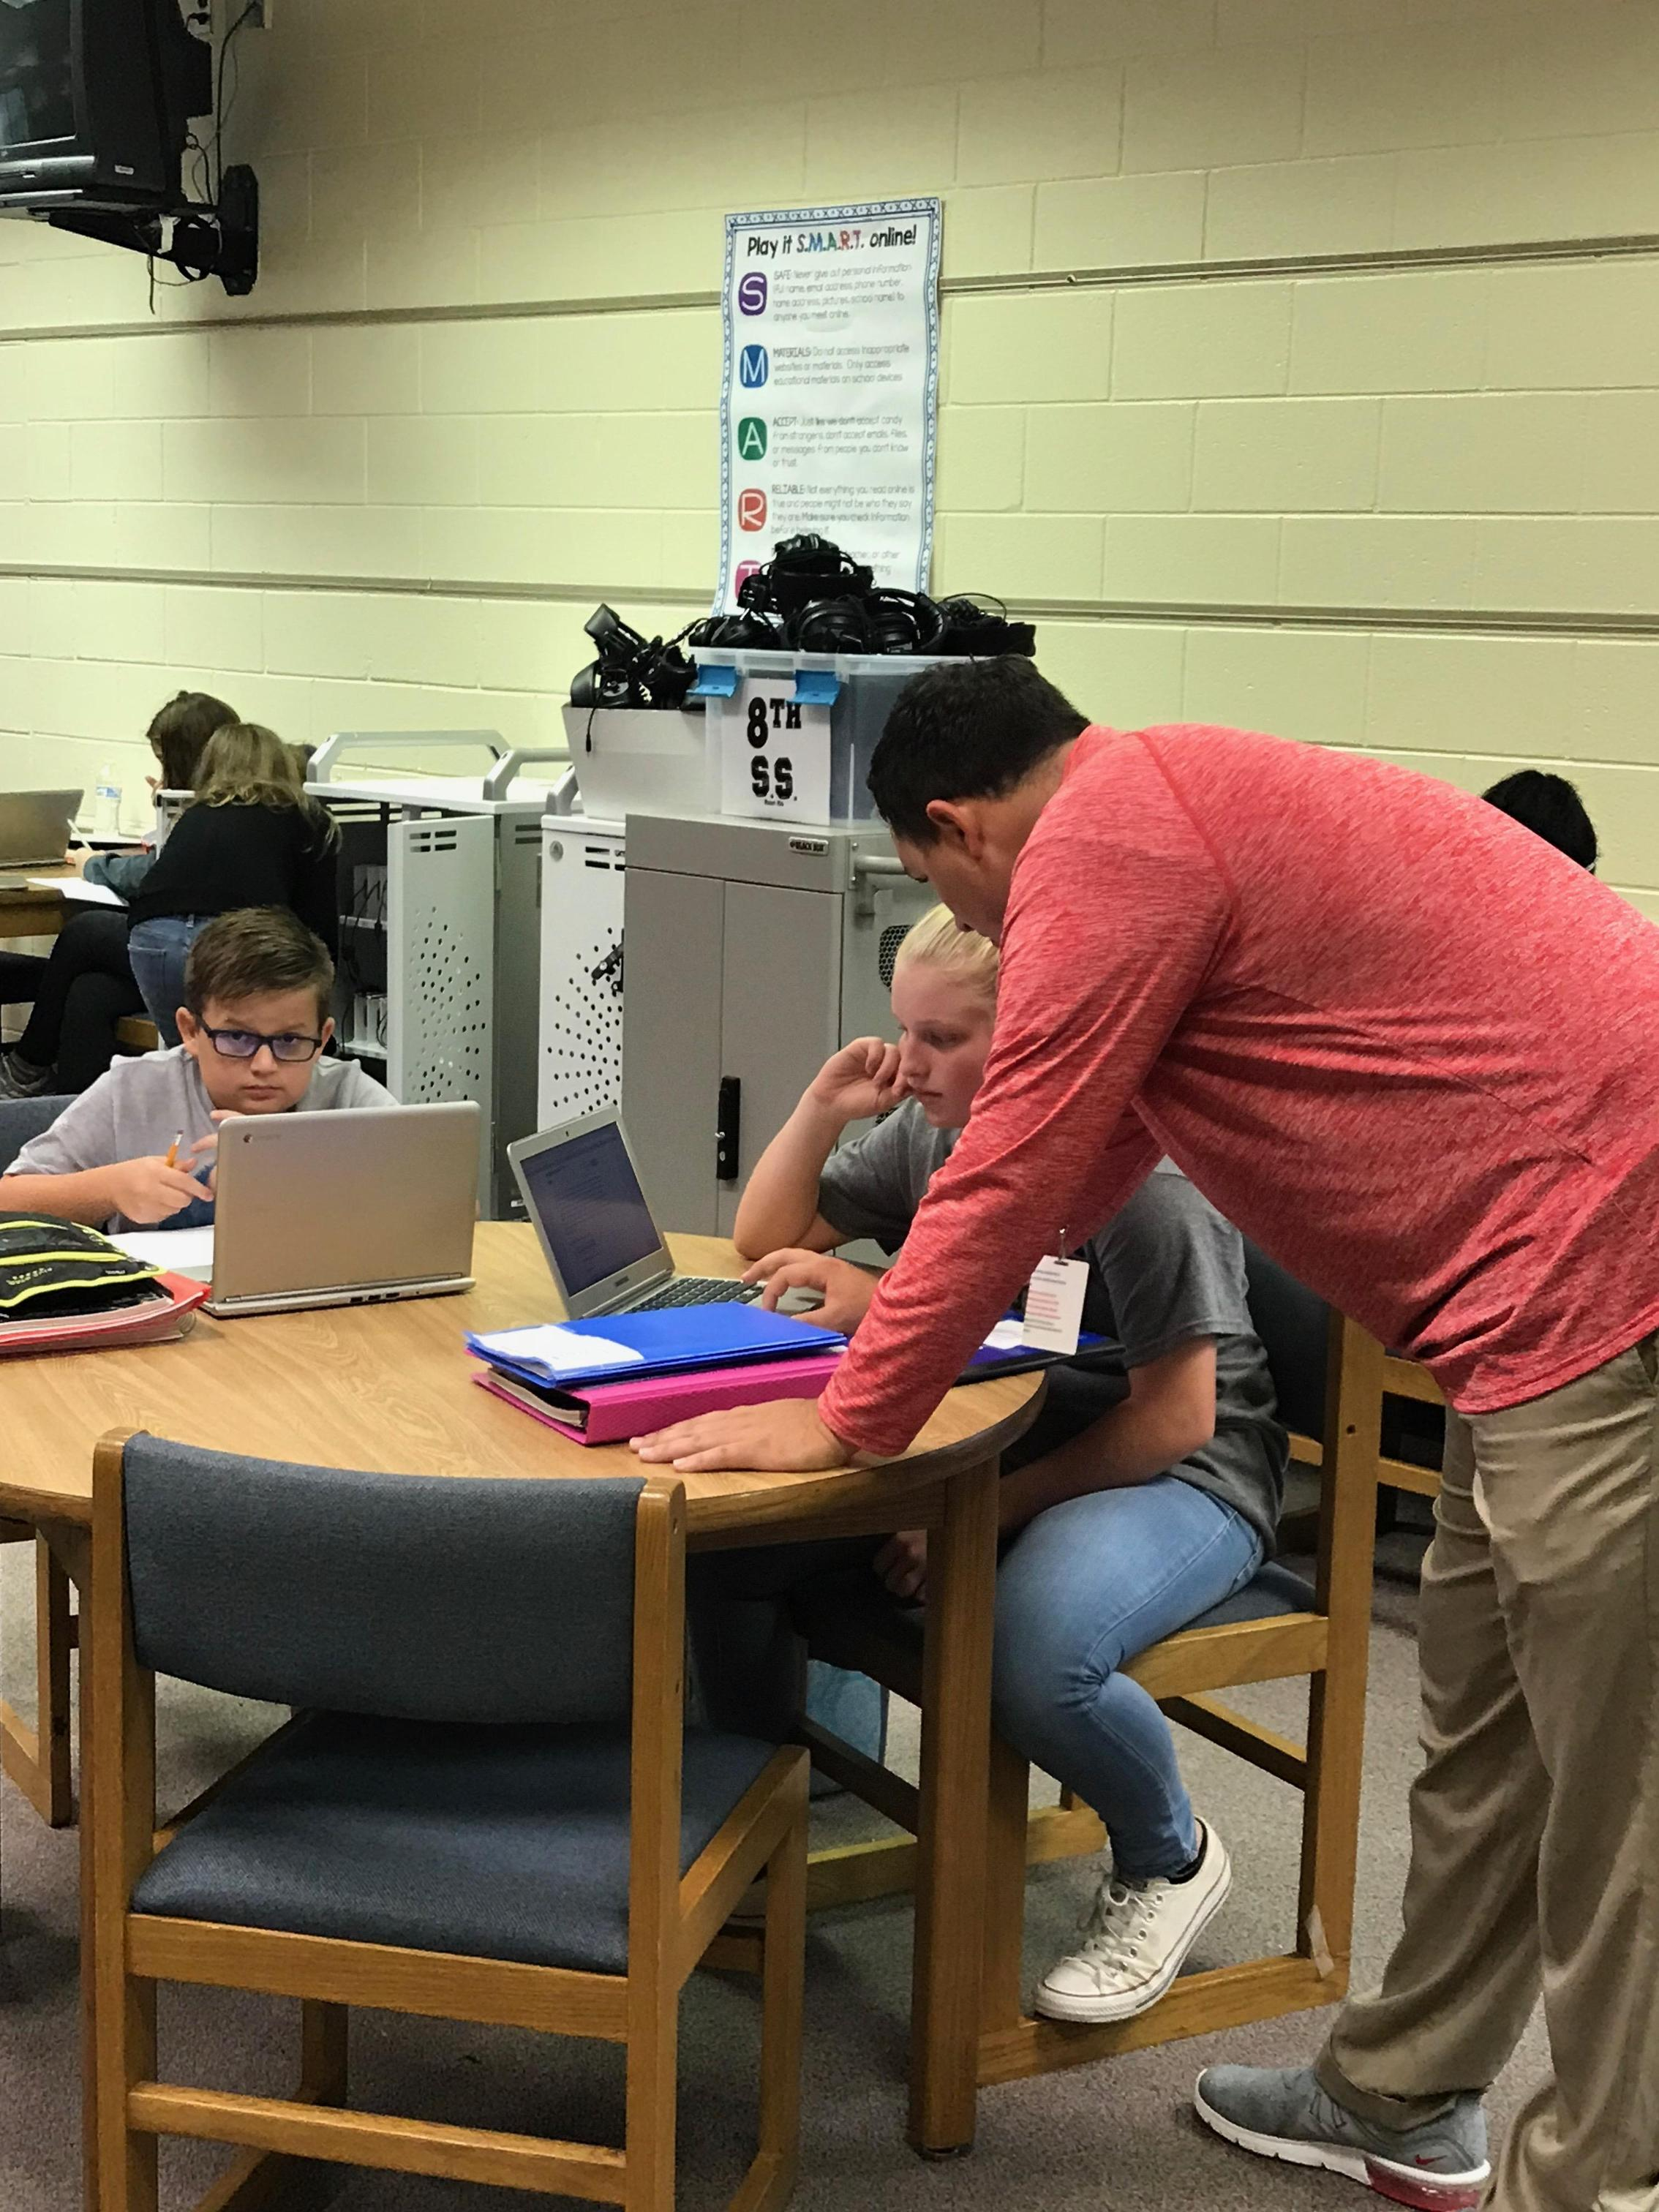 Mr. Smith helping students